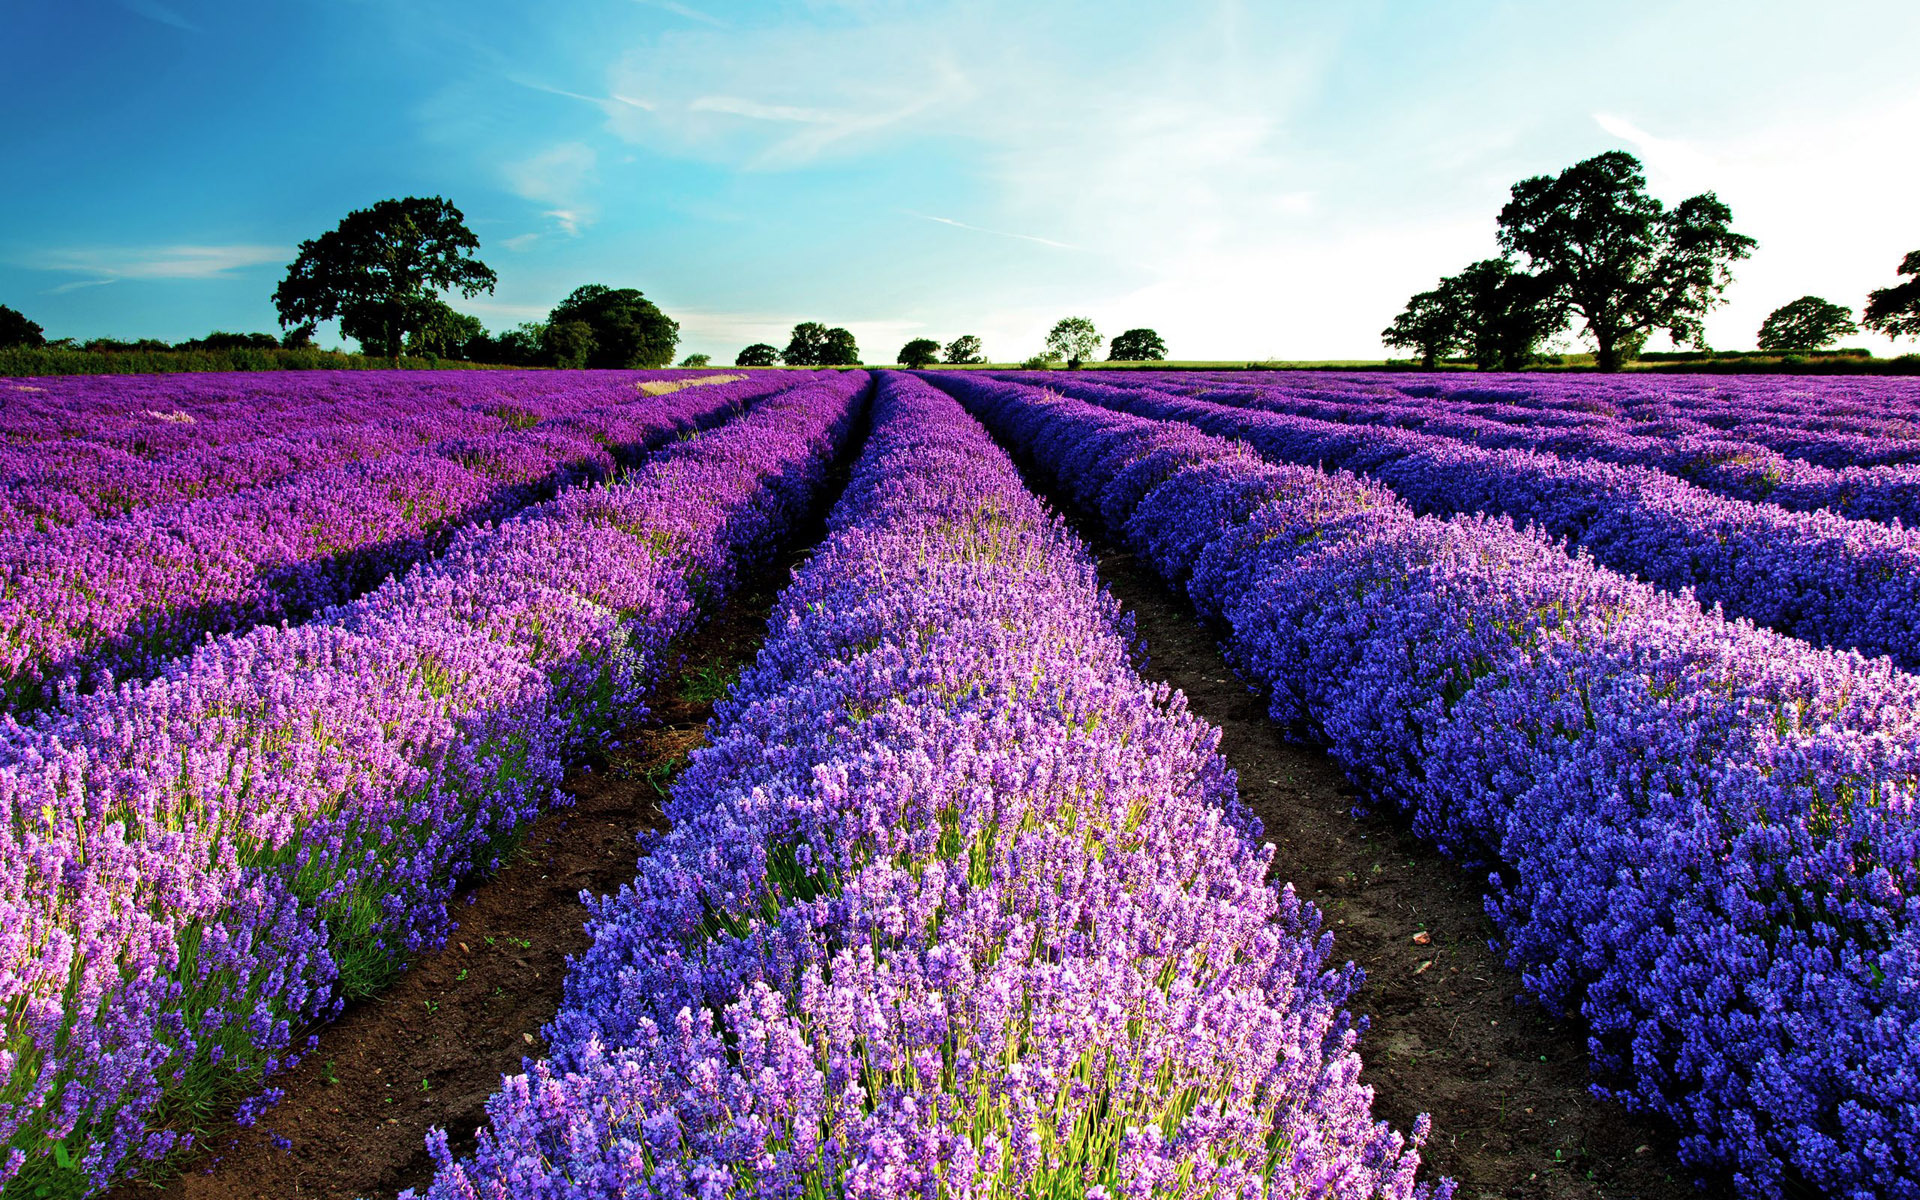 lavender-field-flower-hd-wallpaper-1920x1200-7957.jpg